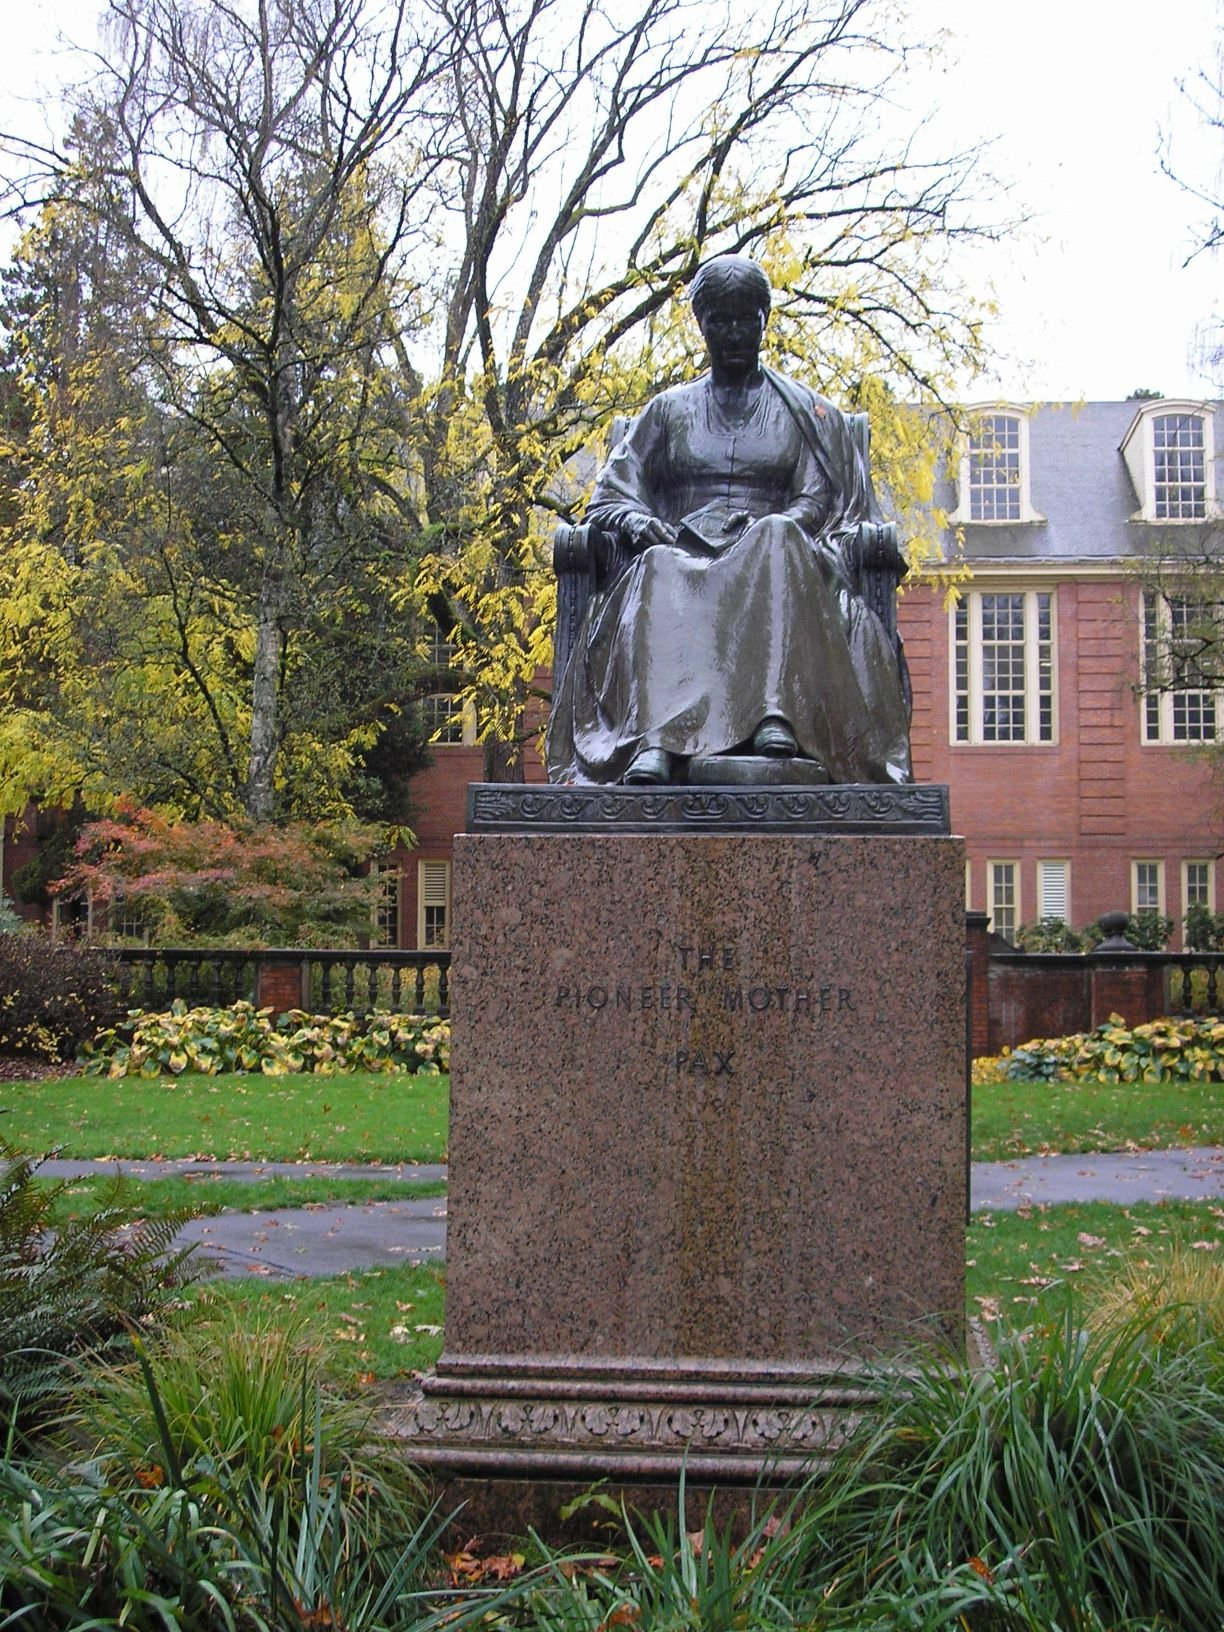 Pioneer Mother statue front view